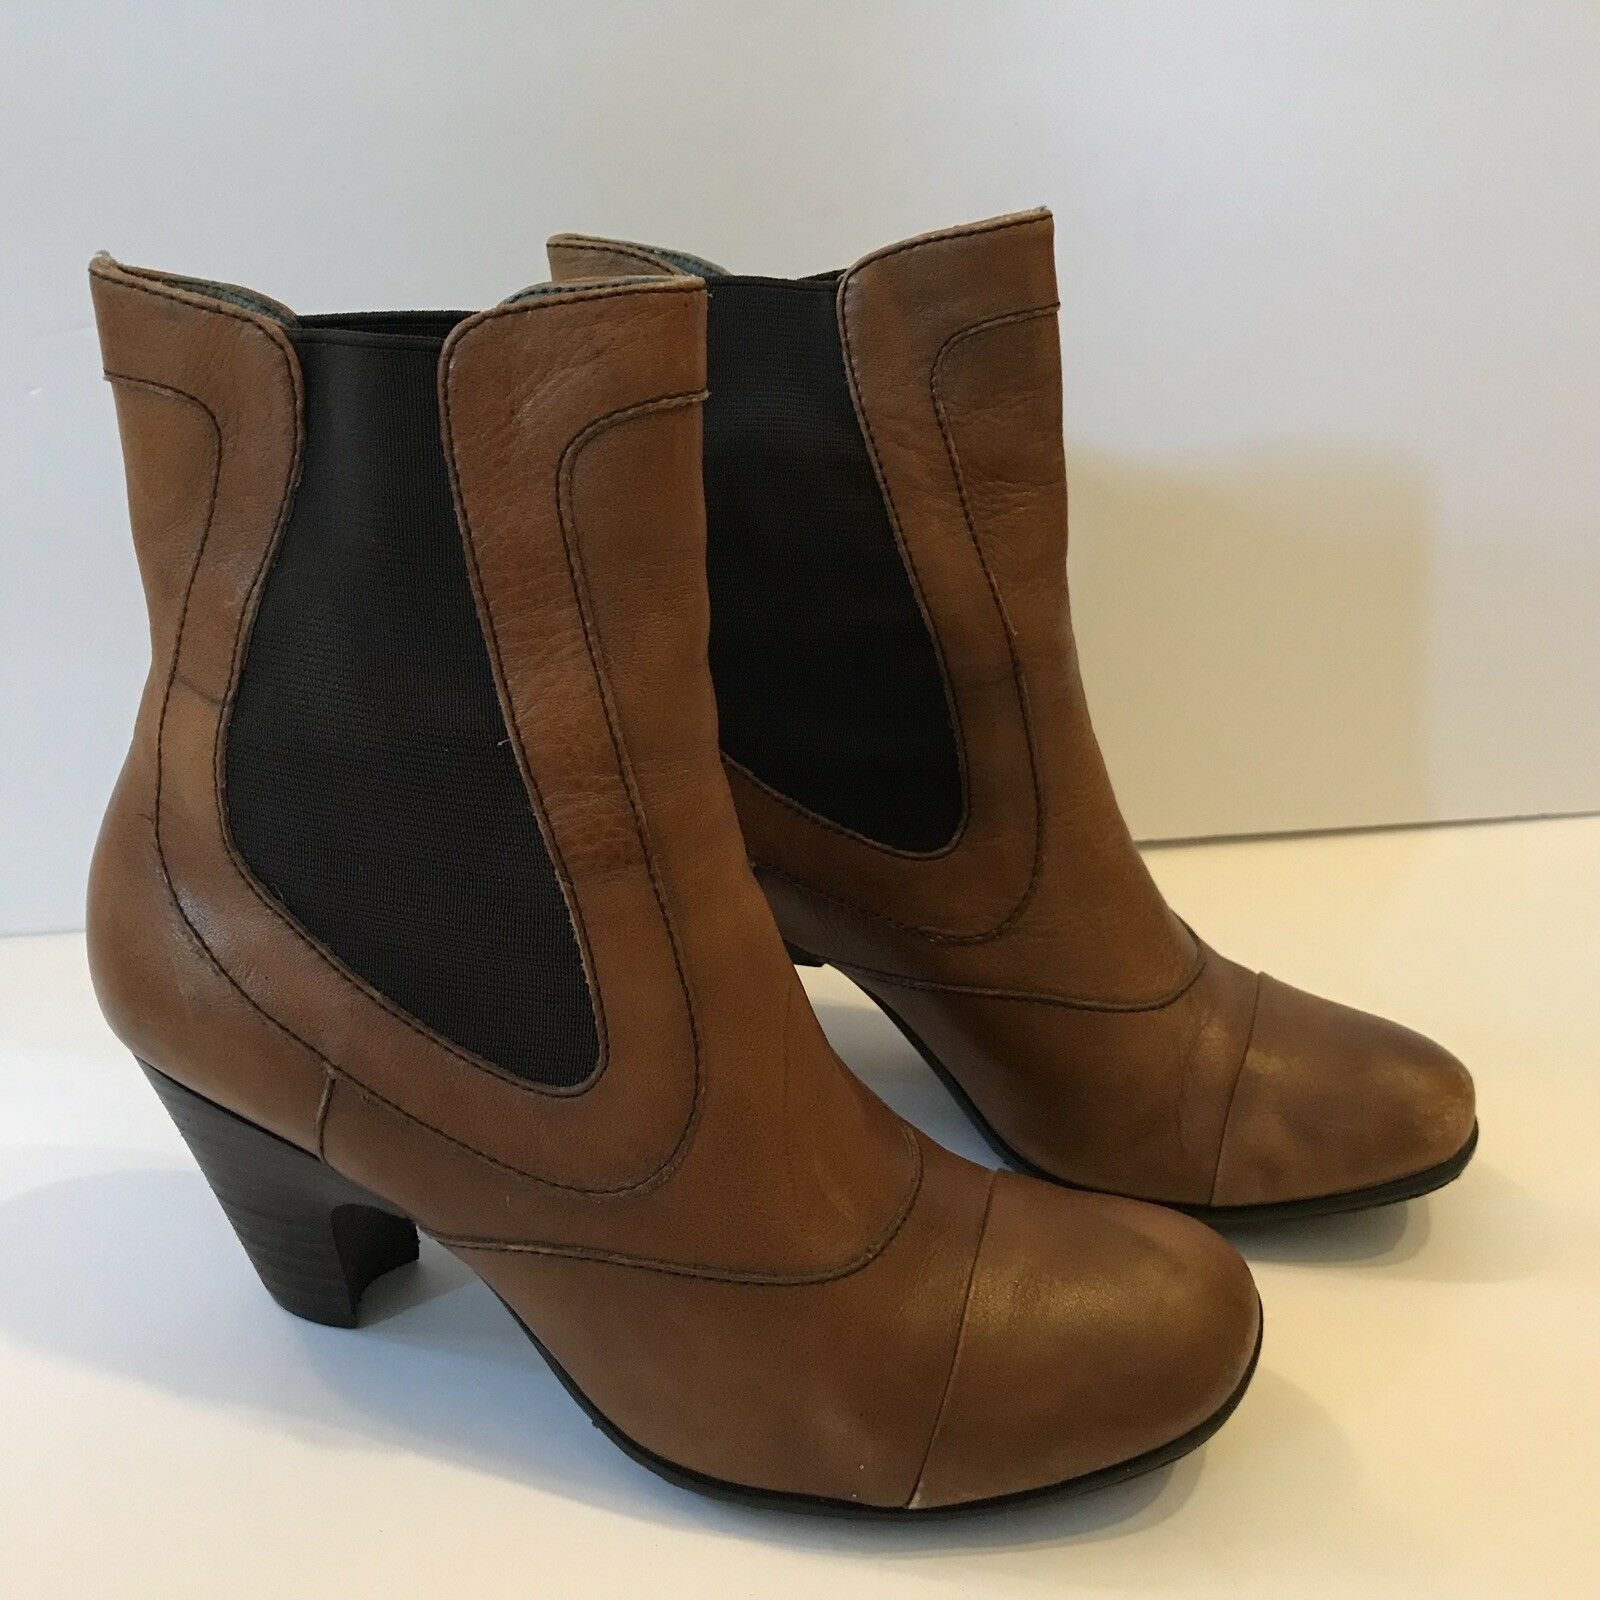 BORN Brown Leather Ankle Boots Cap Toe Women's Size 7.5